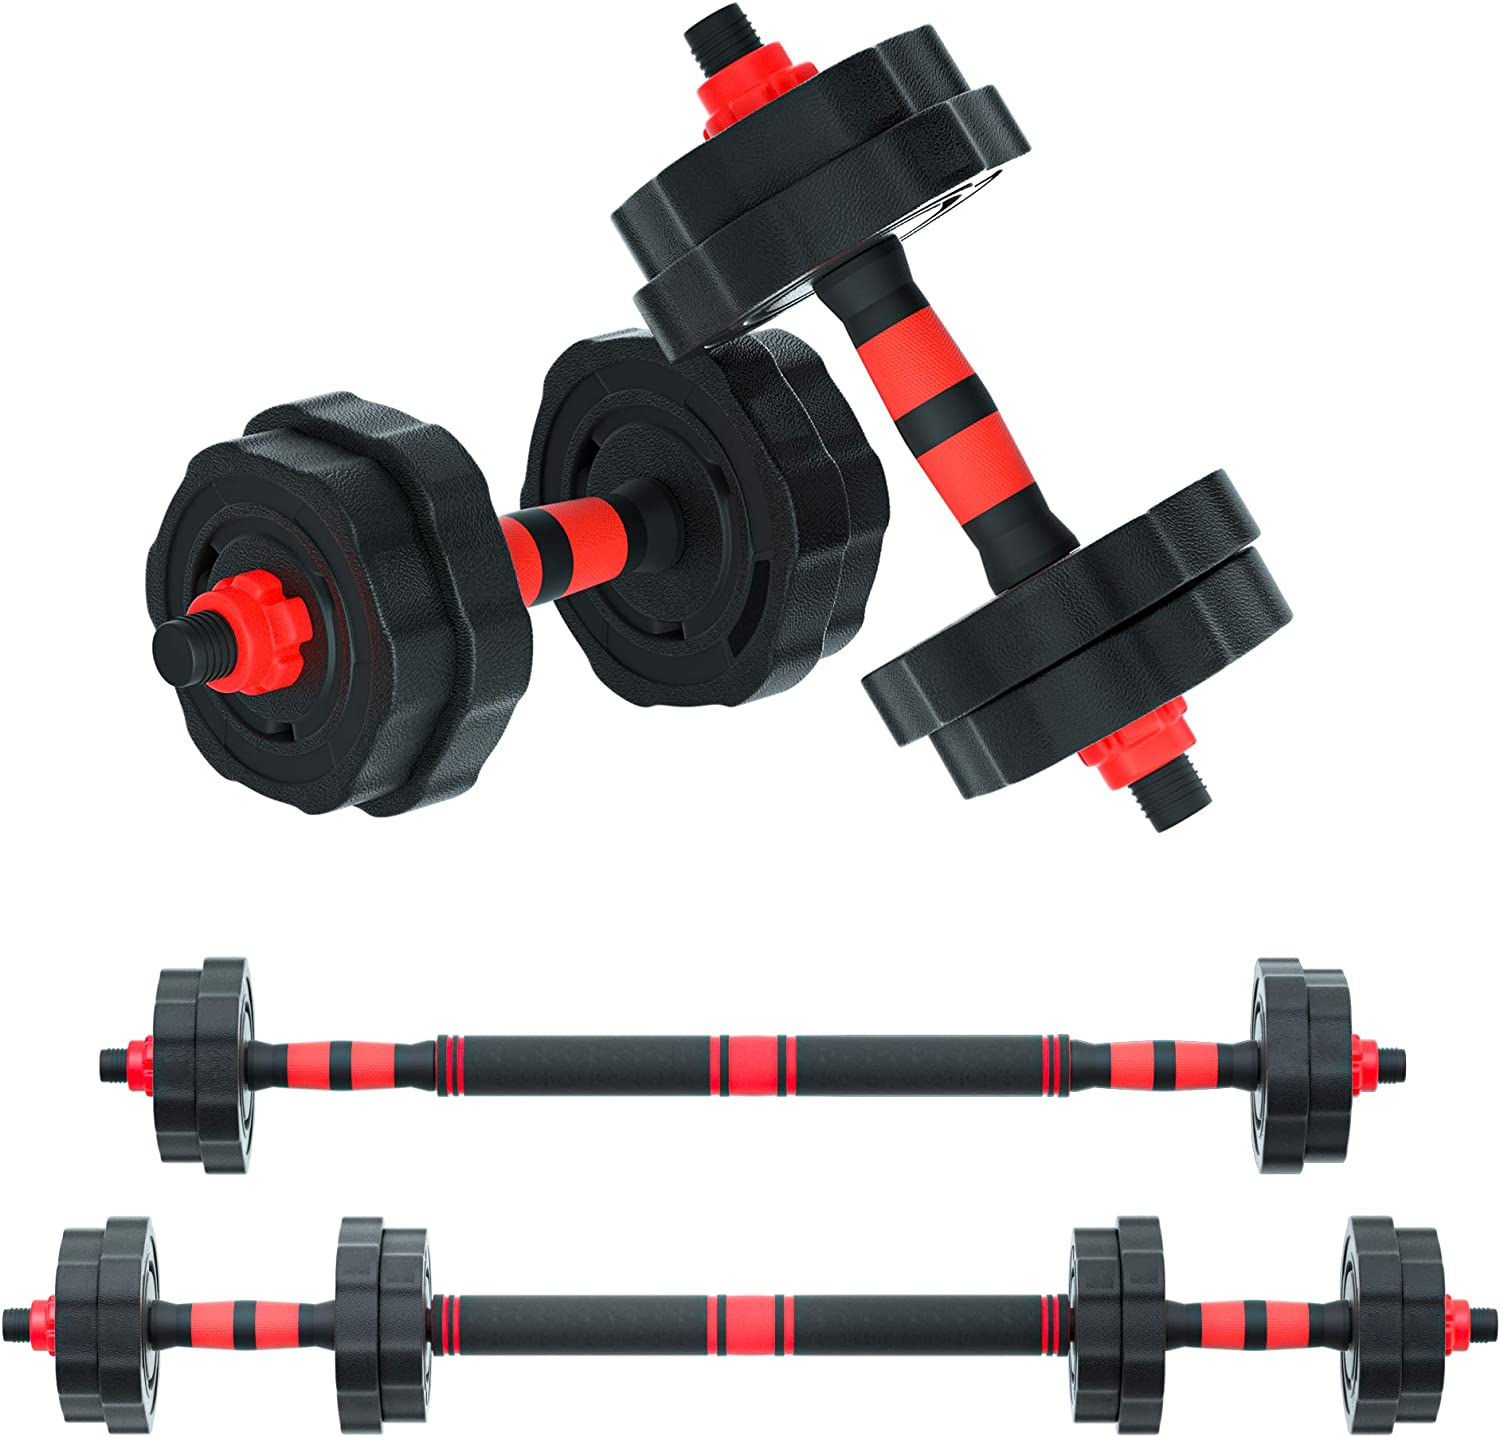 Arespark Adjustable Dumbbell Barbell, 33lbs Free Weights Fitness Barbell Set, Detachable Barbell Set Combination Weightlifting 3 in 1 Fitness Equipment with Connecting Rod for Gym Home Office